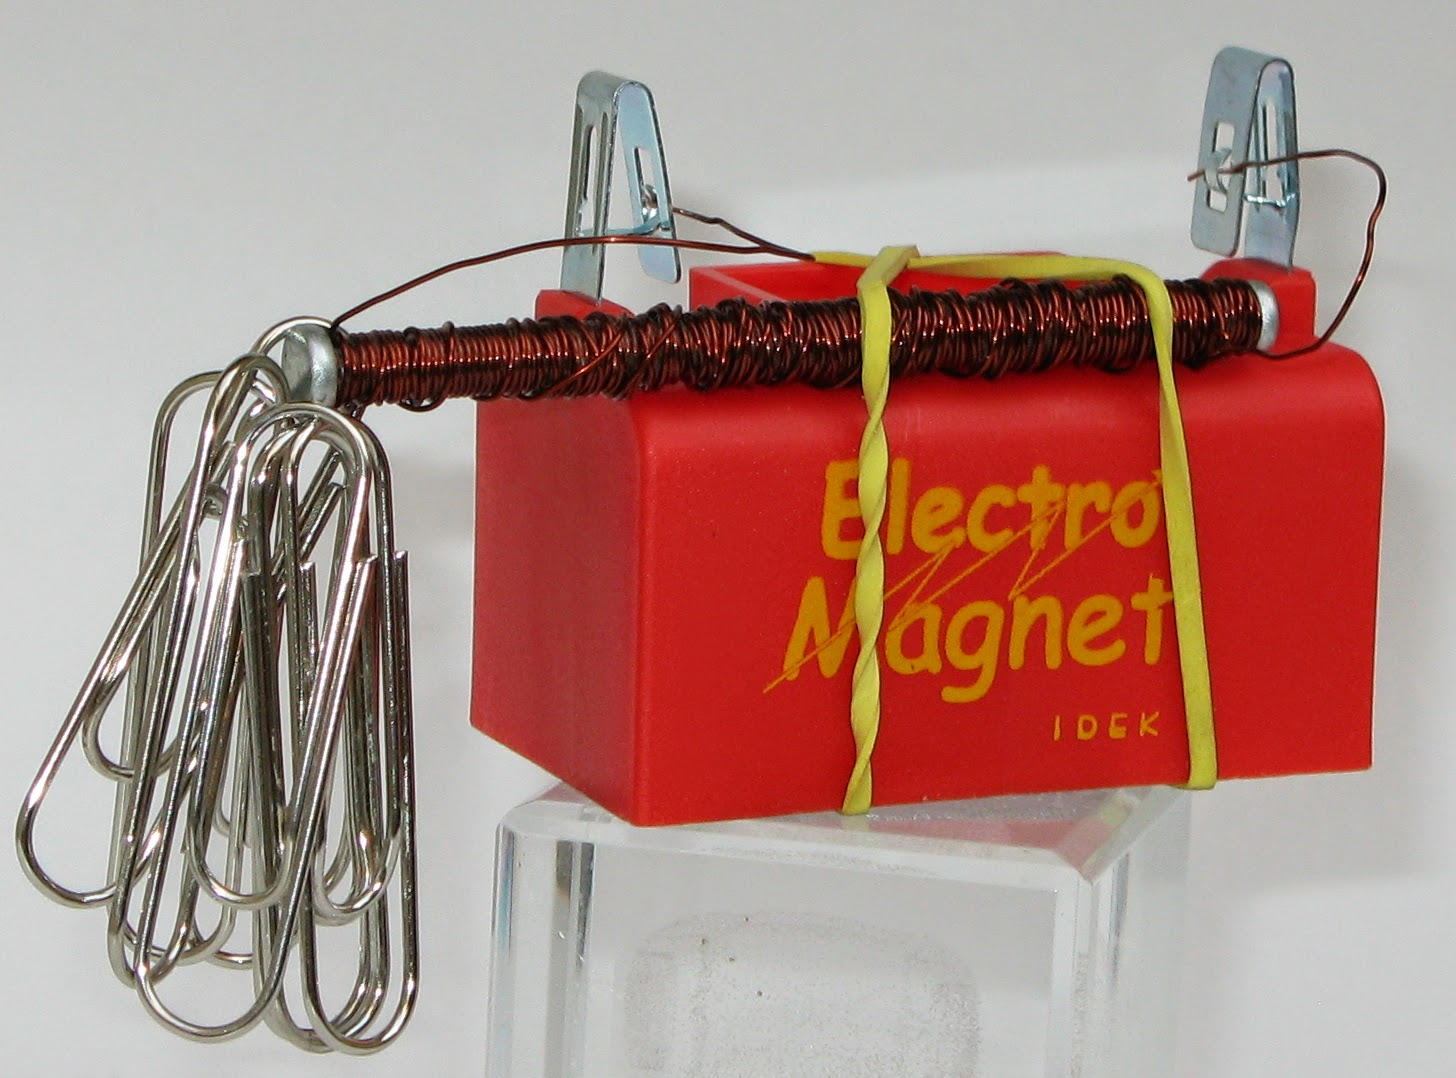 Do it yourself kits innovative design educational kits the kit consists of battery box copper wire rod copper contacts and a switch its a do it yourself kit with an instruction manual which gives a step by solutioingenieria Image collections